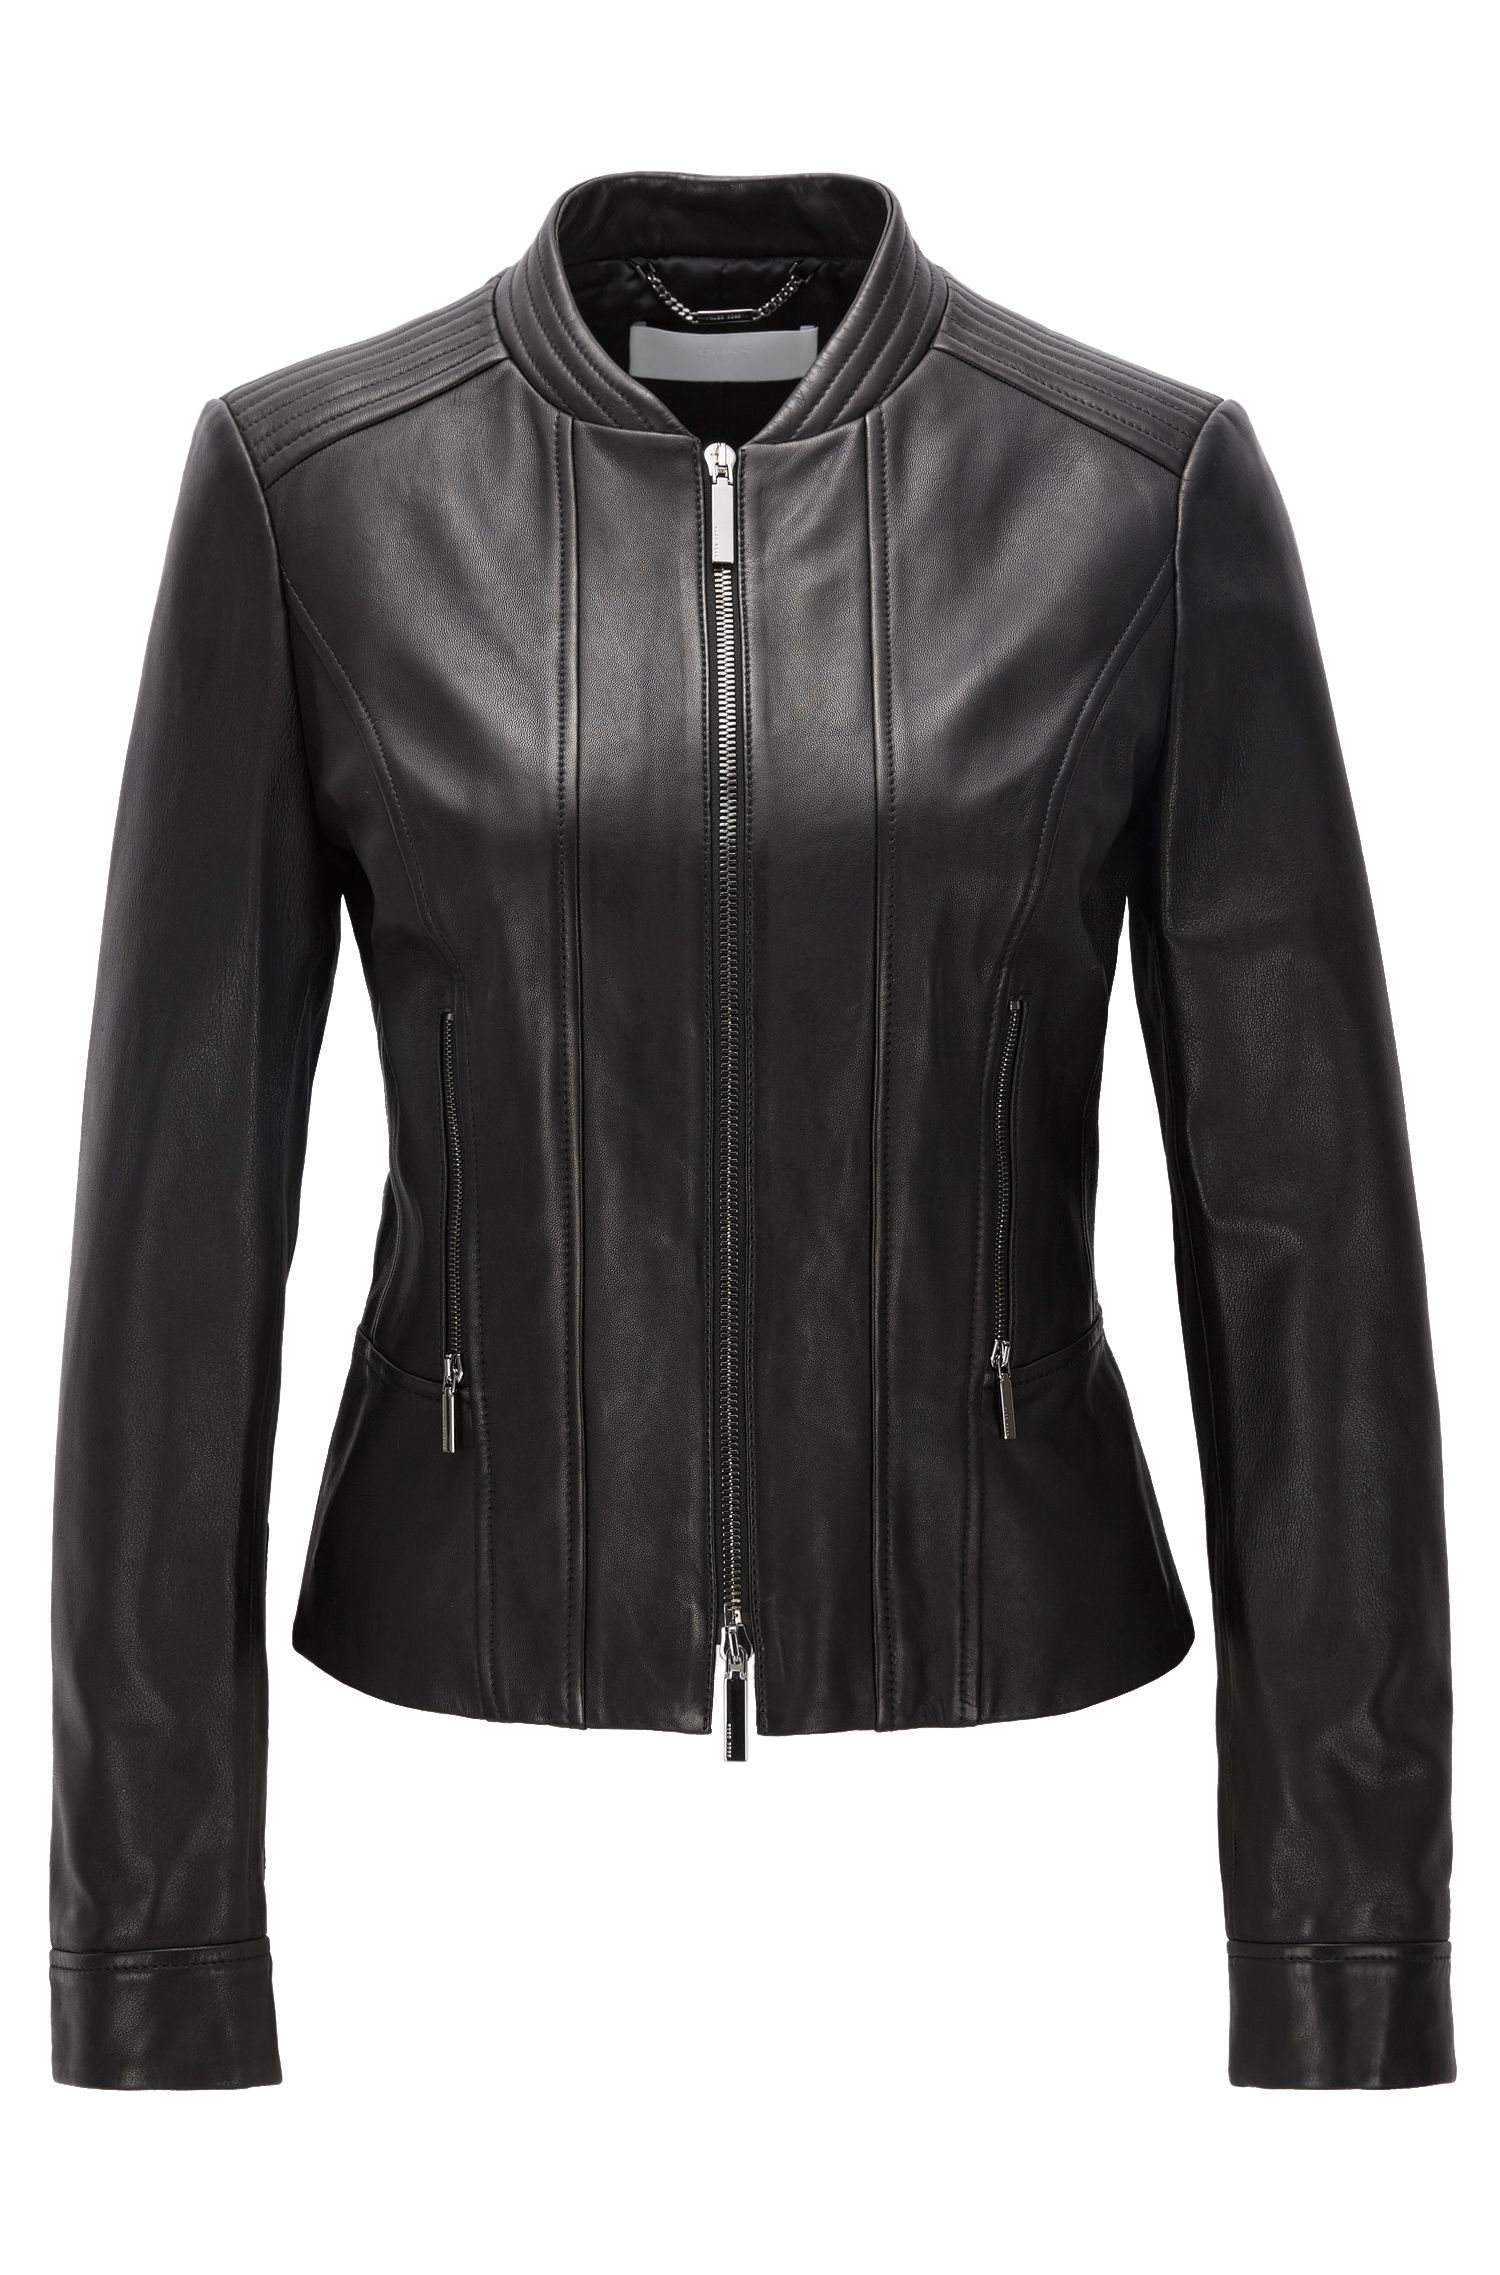 Leather biker jacket with two-way zip